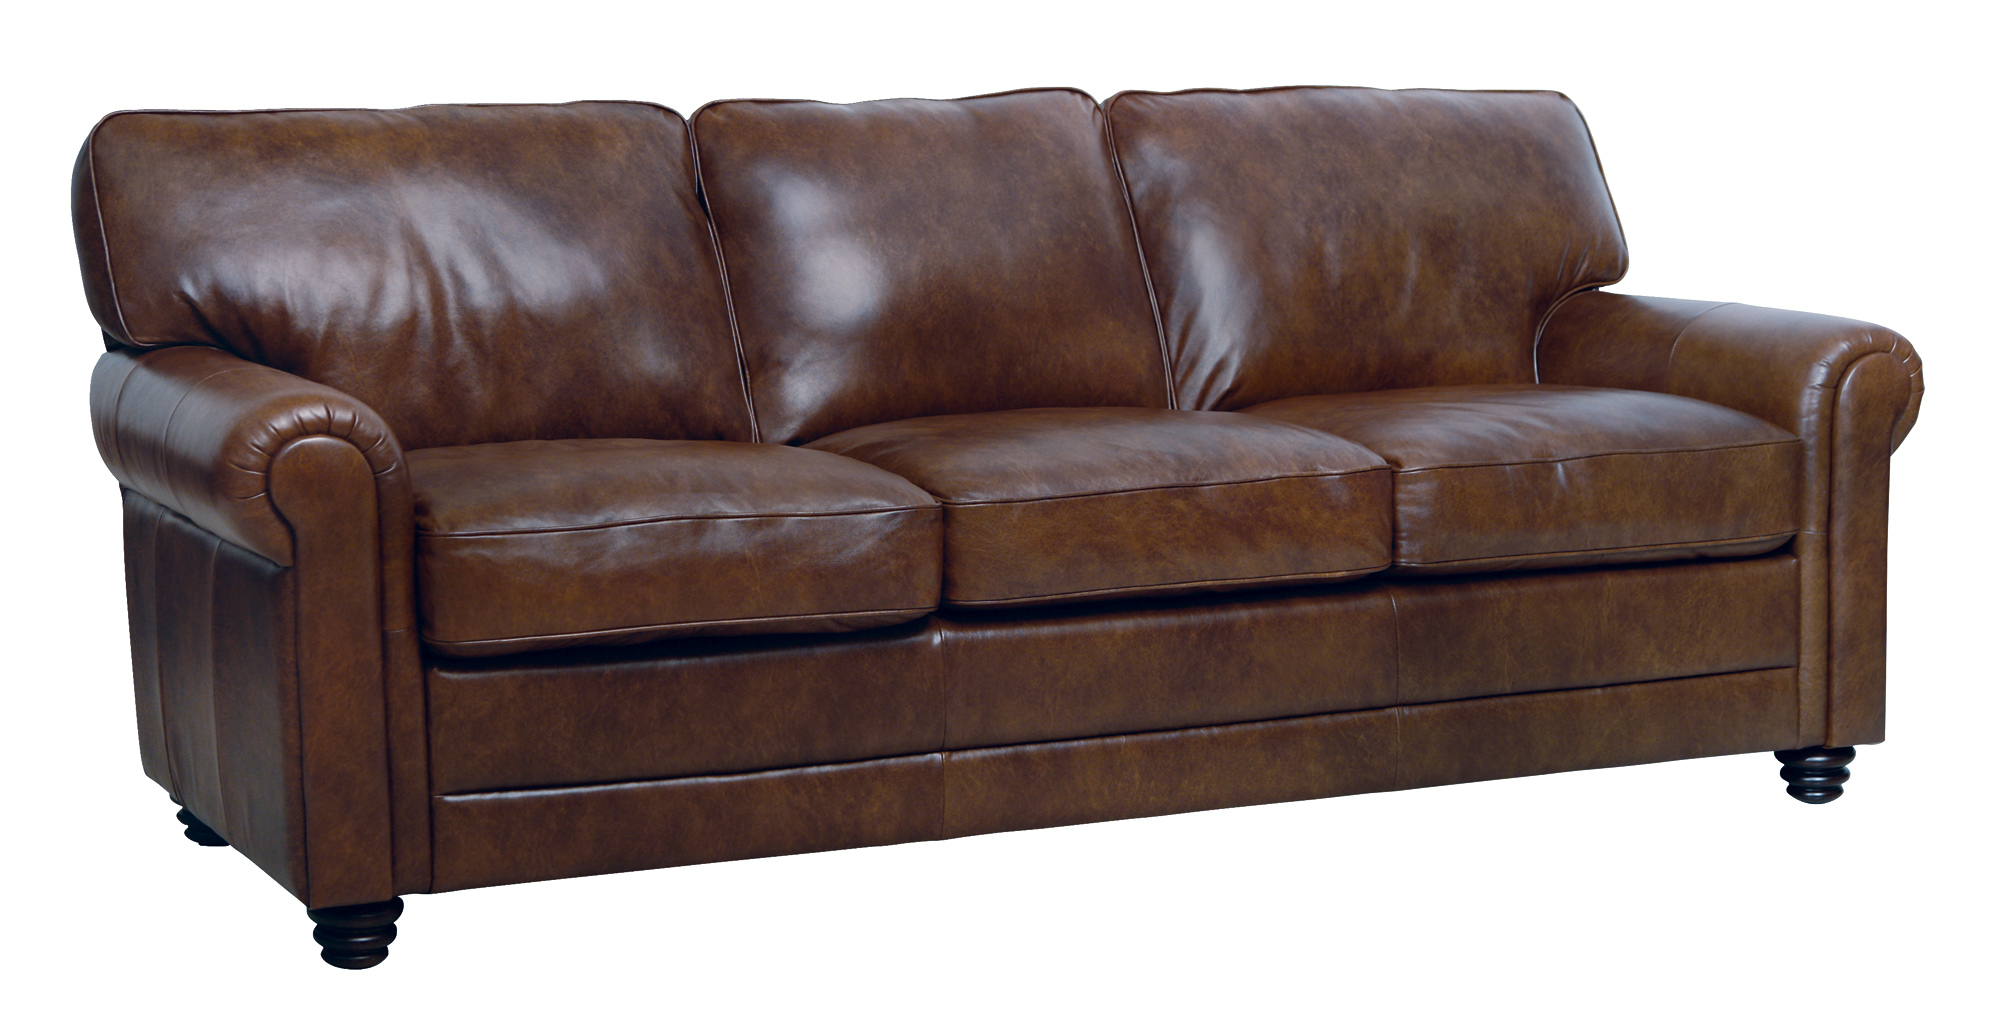 Gallery For Leather Sofa Chair